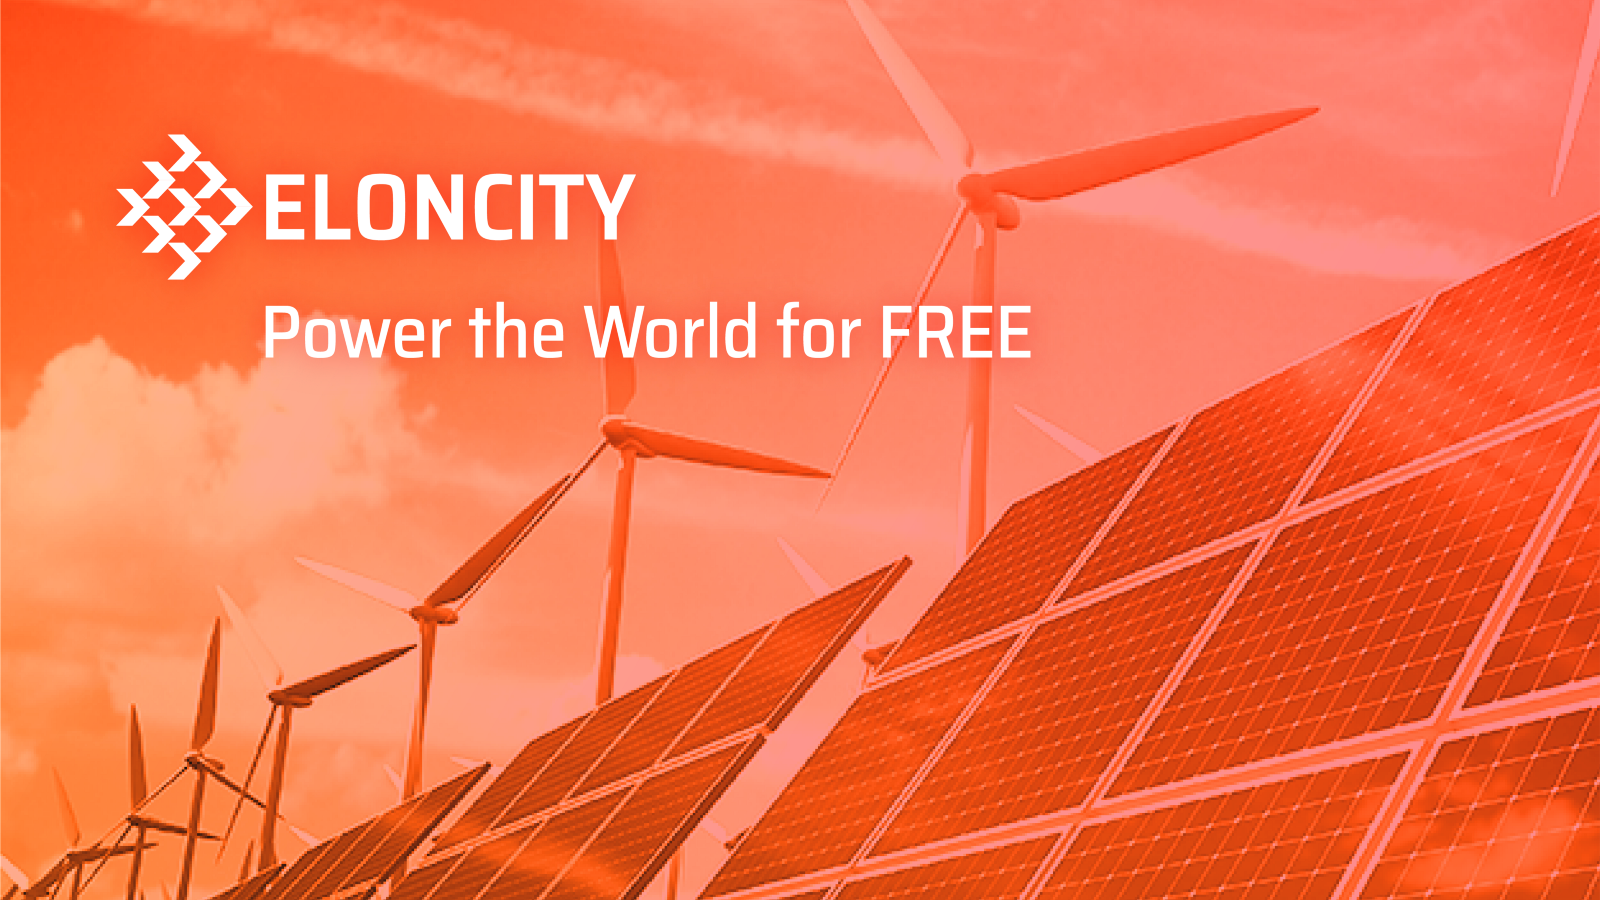 ELONCITY raises $20M for Blockchain-based Energy grid